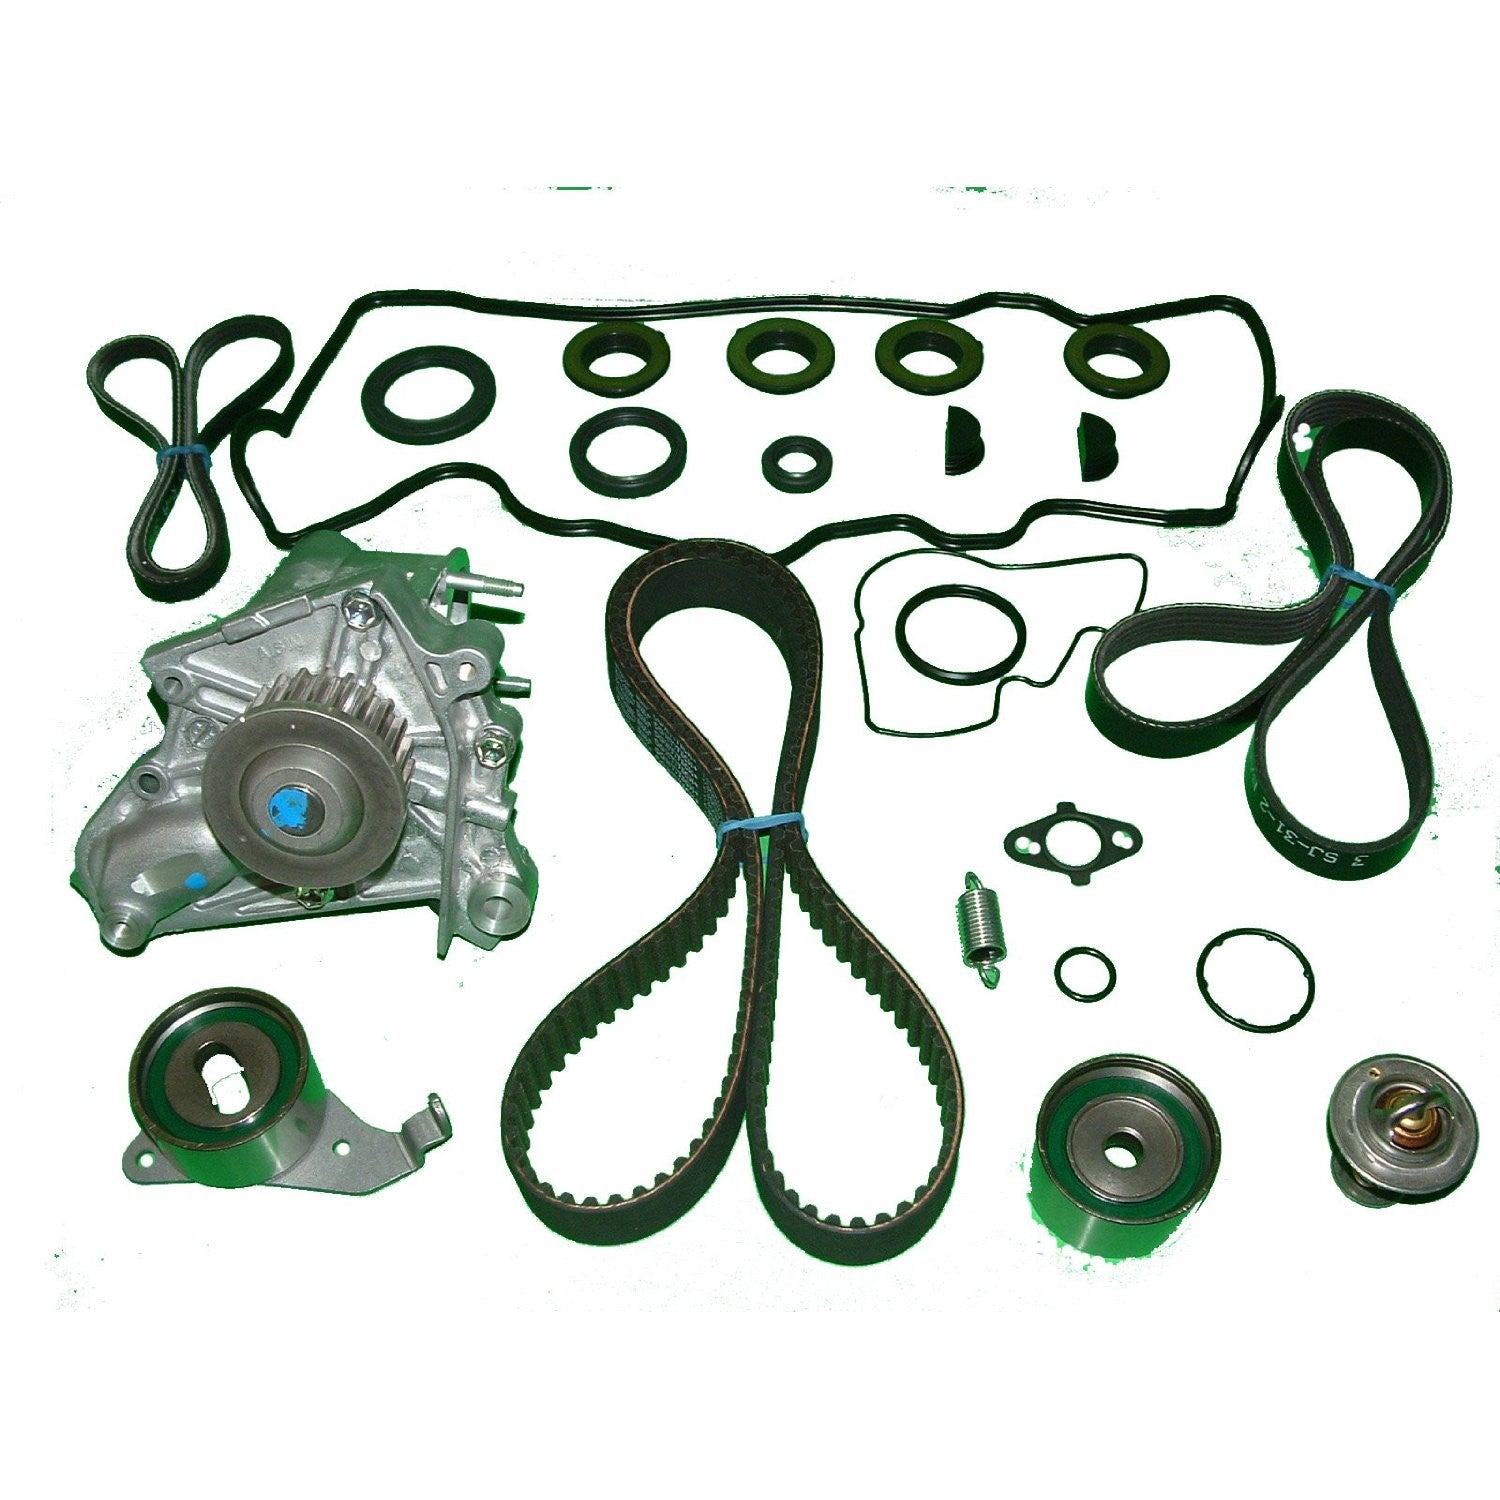 Timing Belt Kit Toyota Camry 4 Cyl Only 1992 1993 1994 1995 1996 4runner 1997 1998 1999 2000 2001